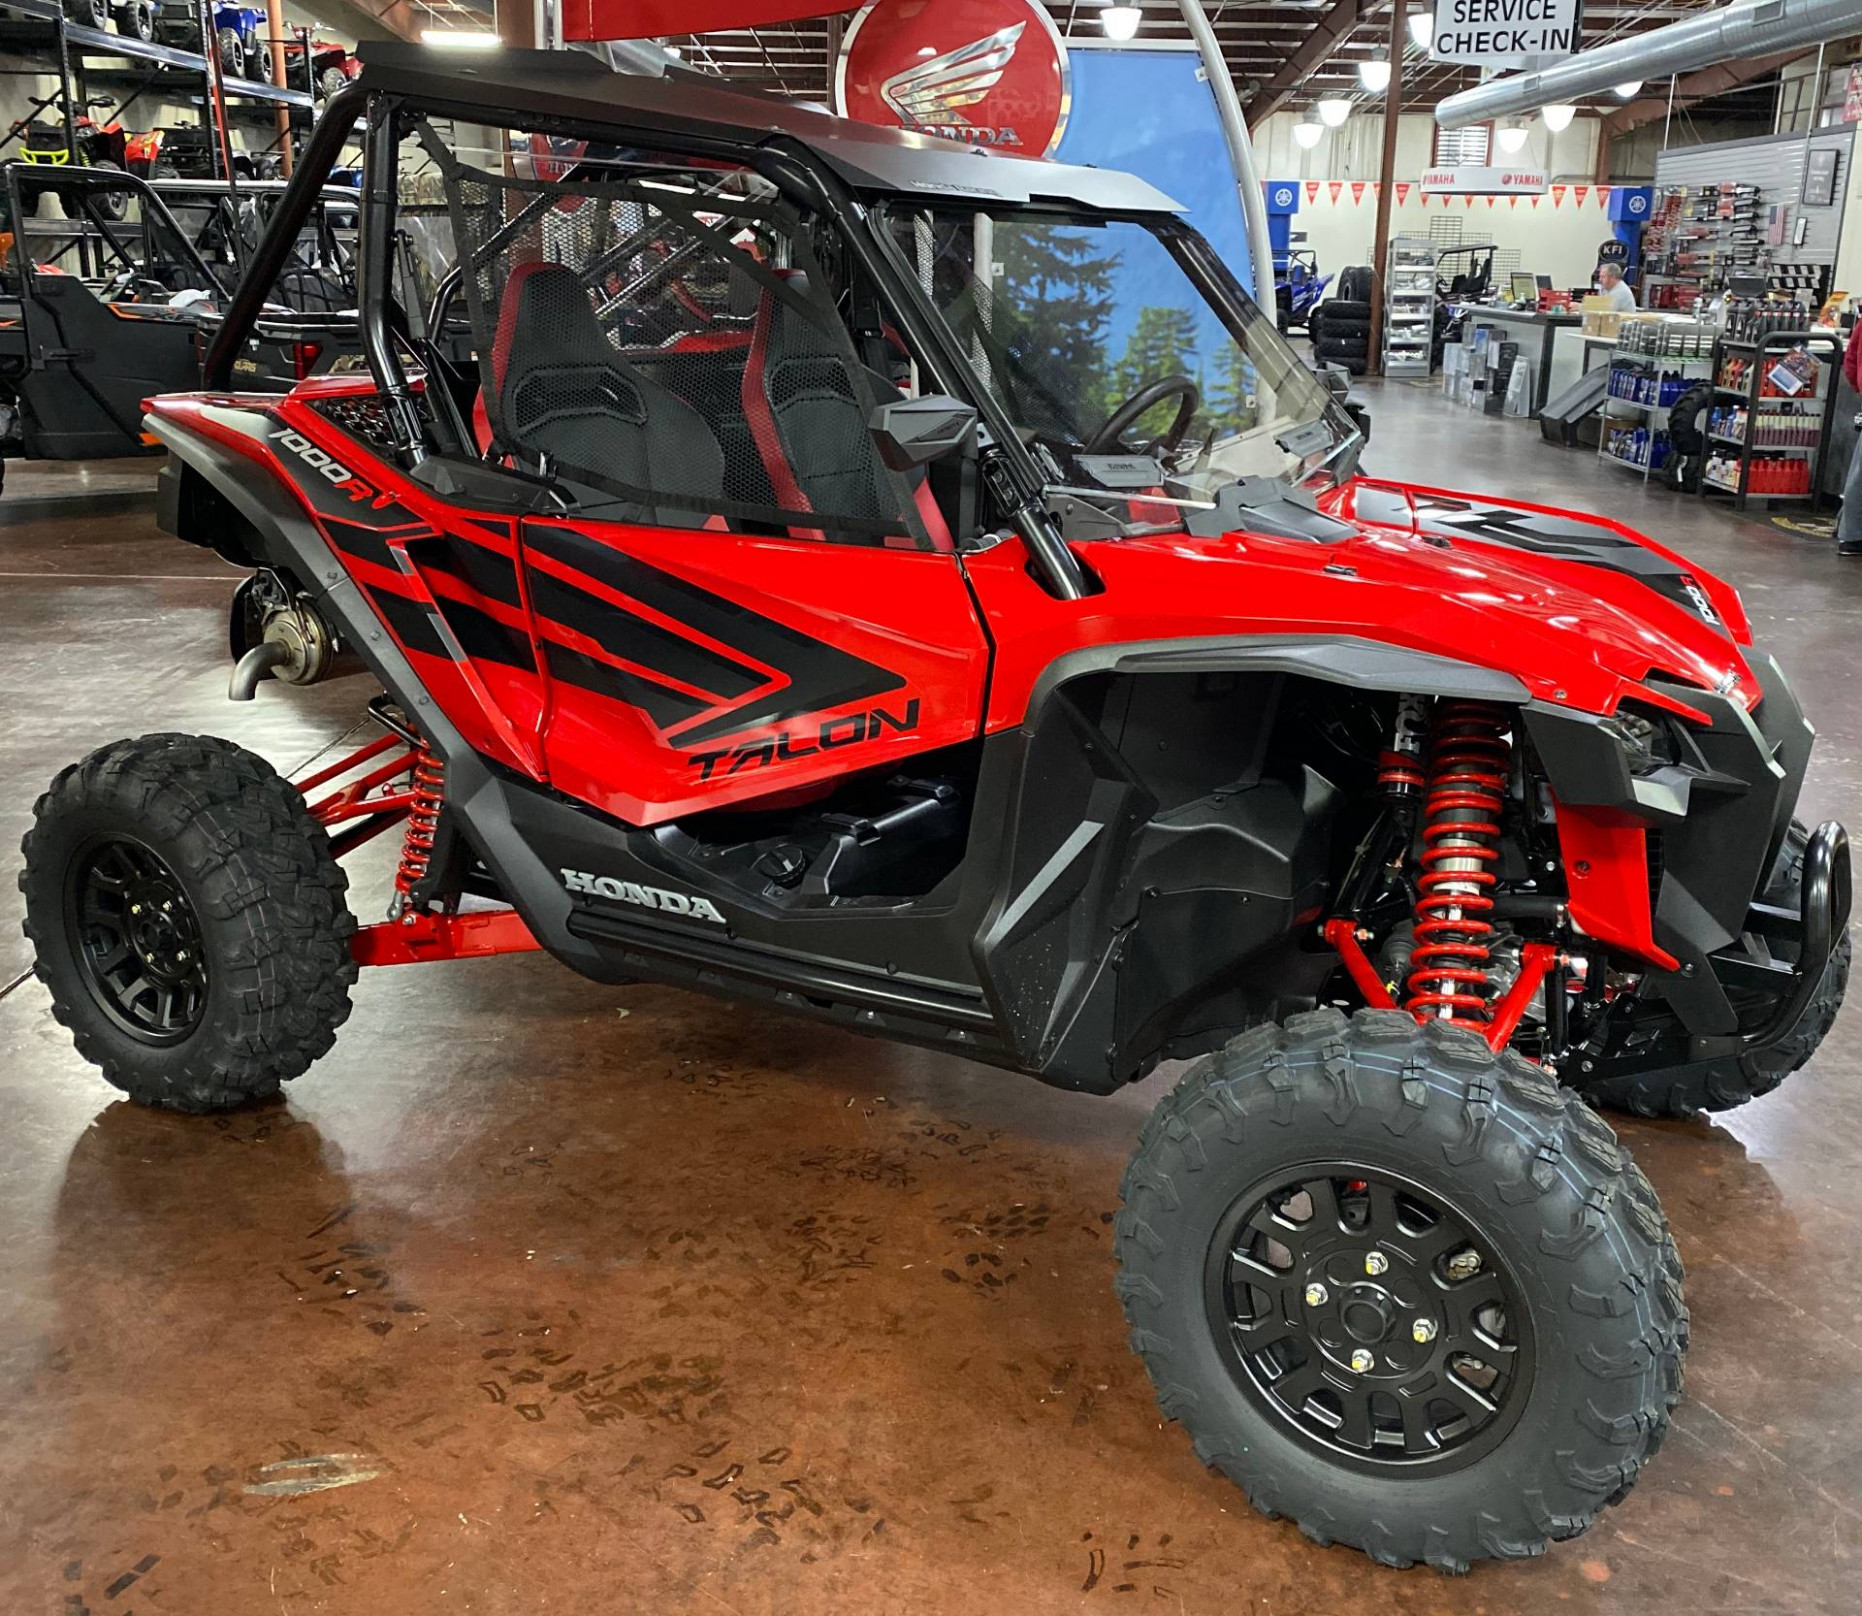 8 Honda Talon 8R in Statesville, North Carolina - 2020 honda talon 1000r